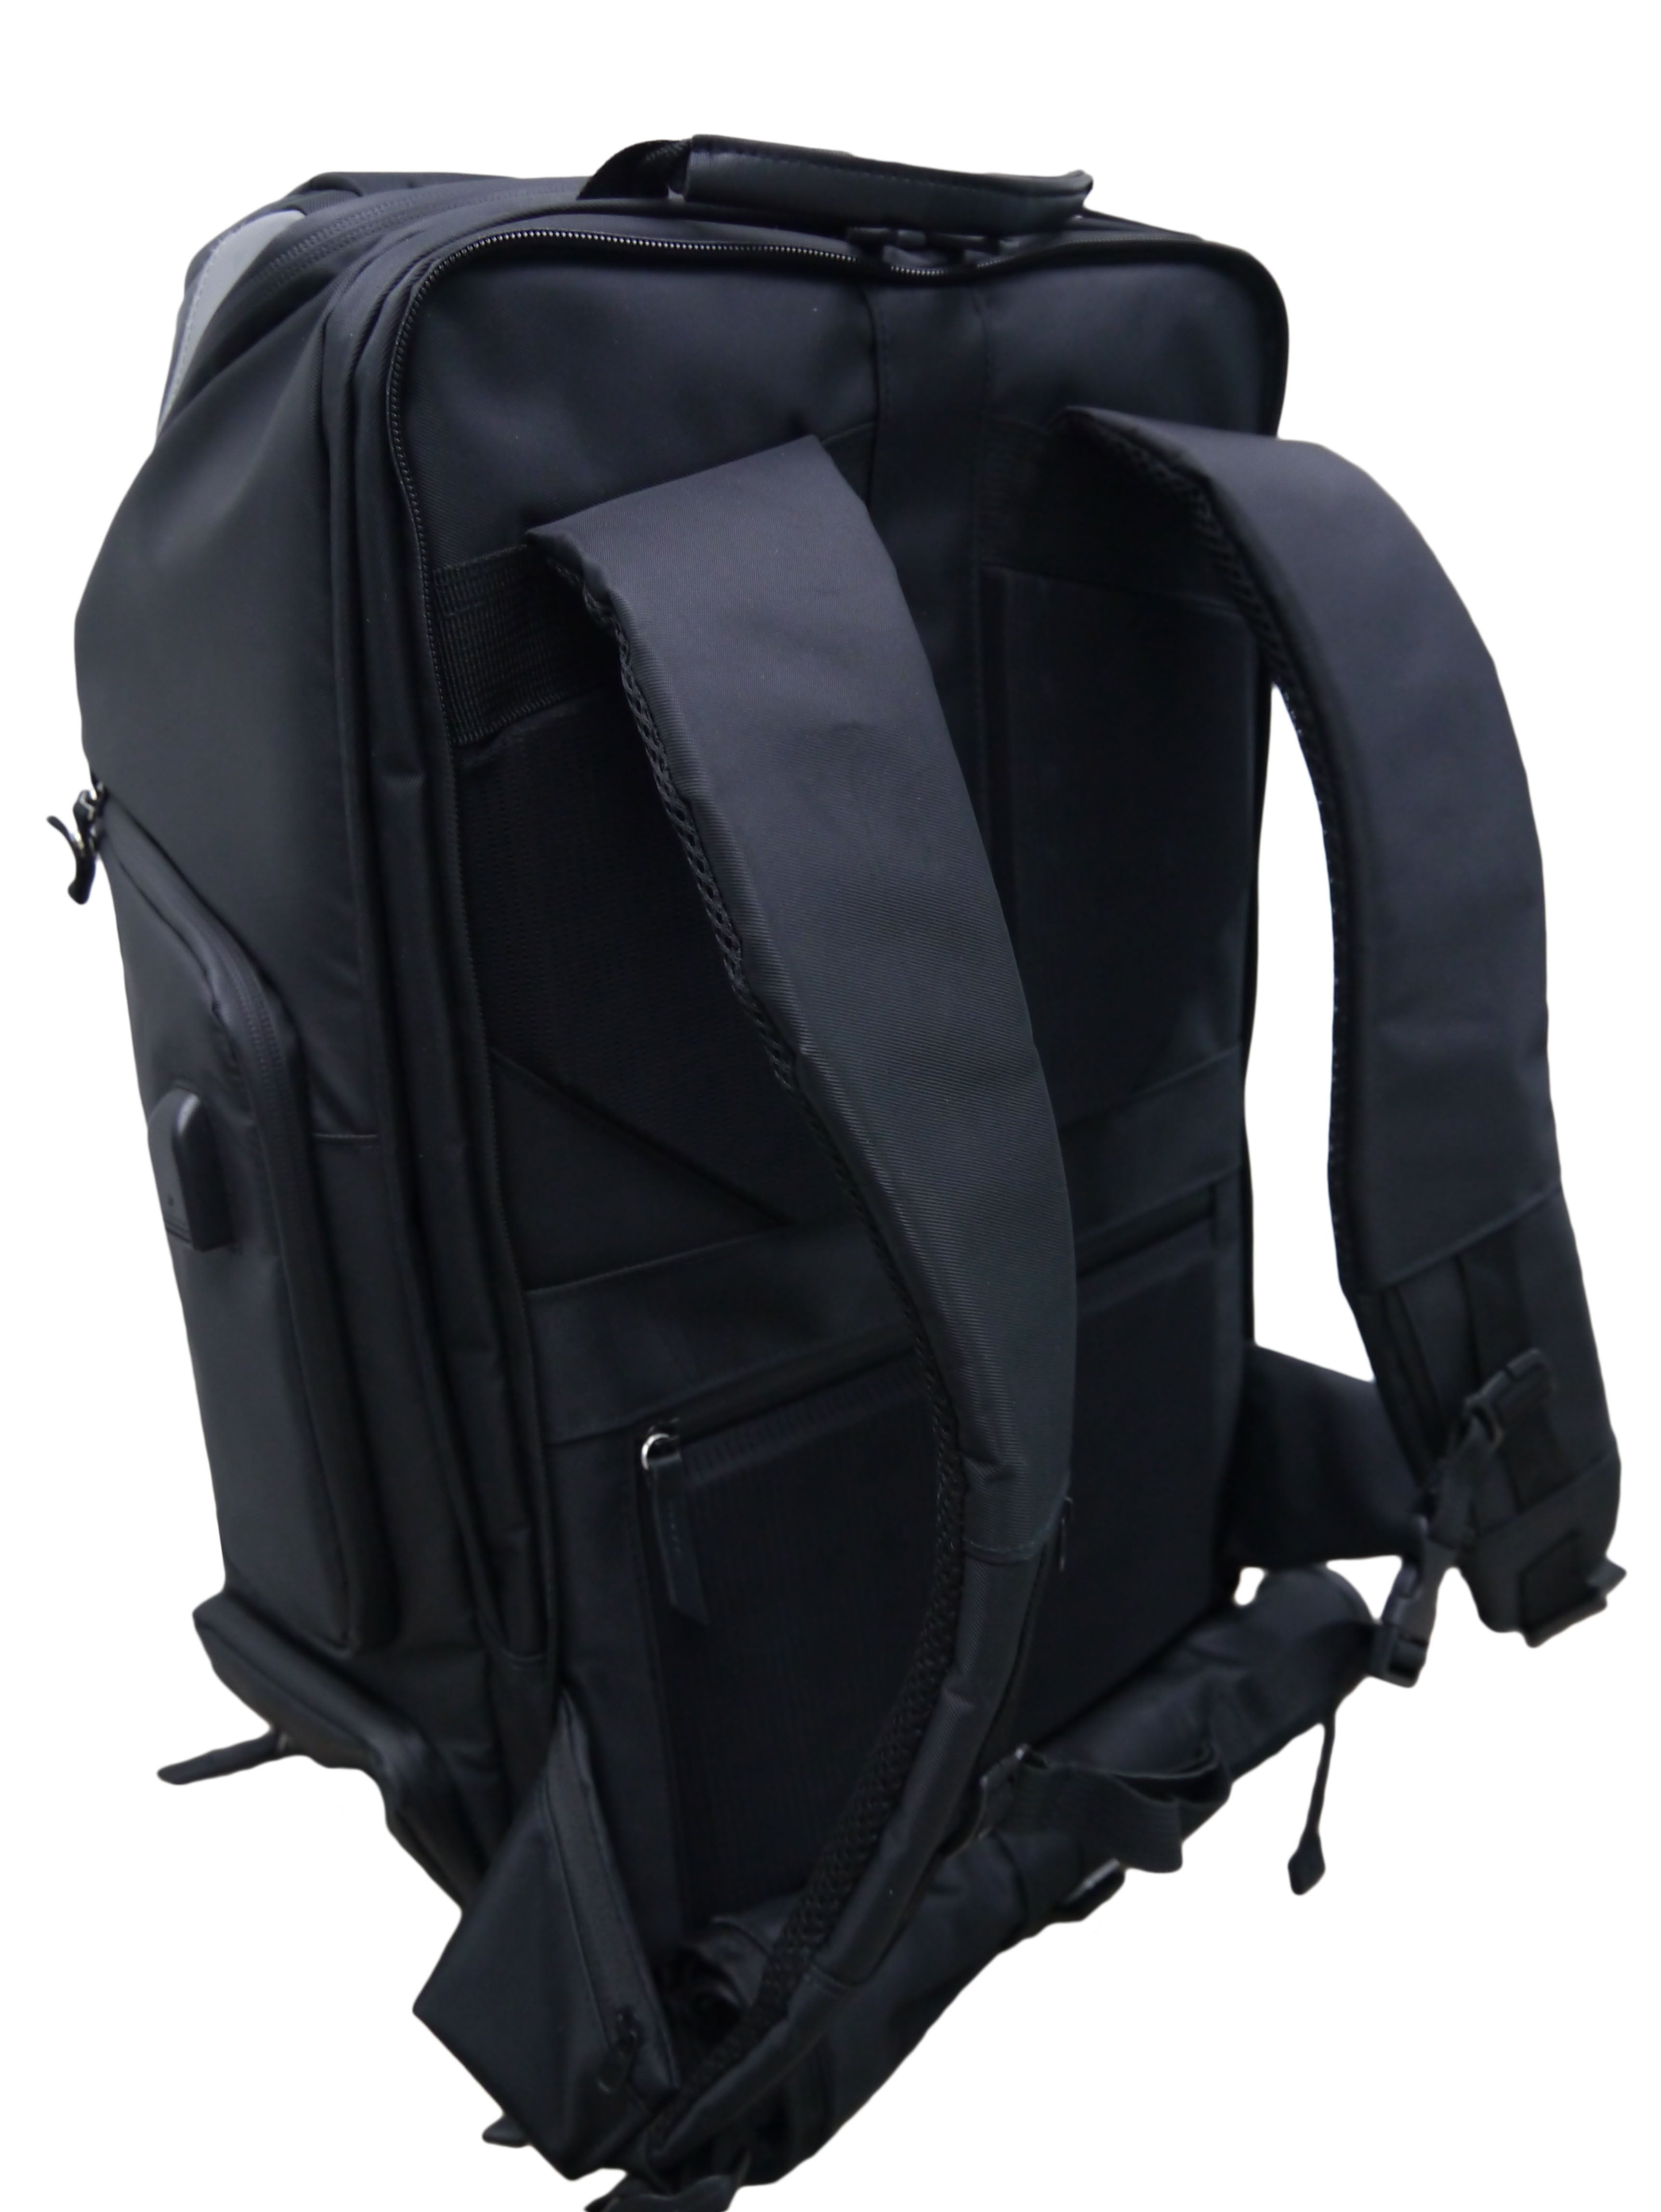 Instinct Cyber 35 Backpack